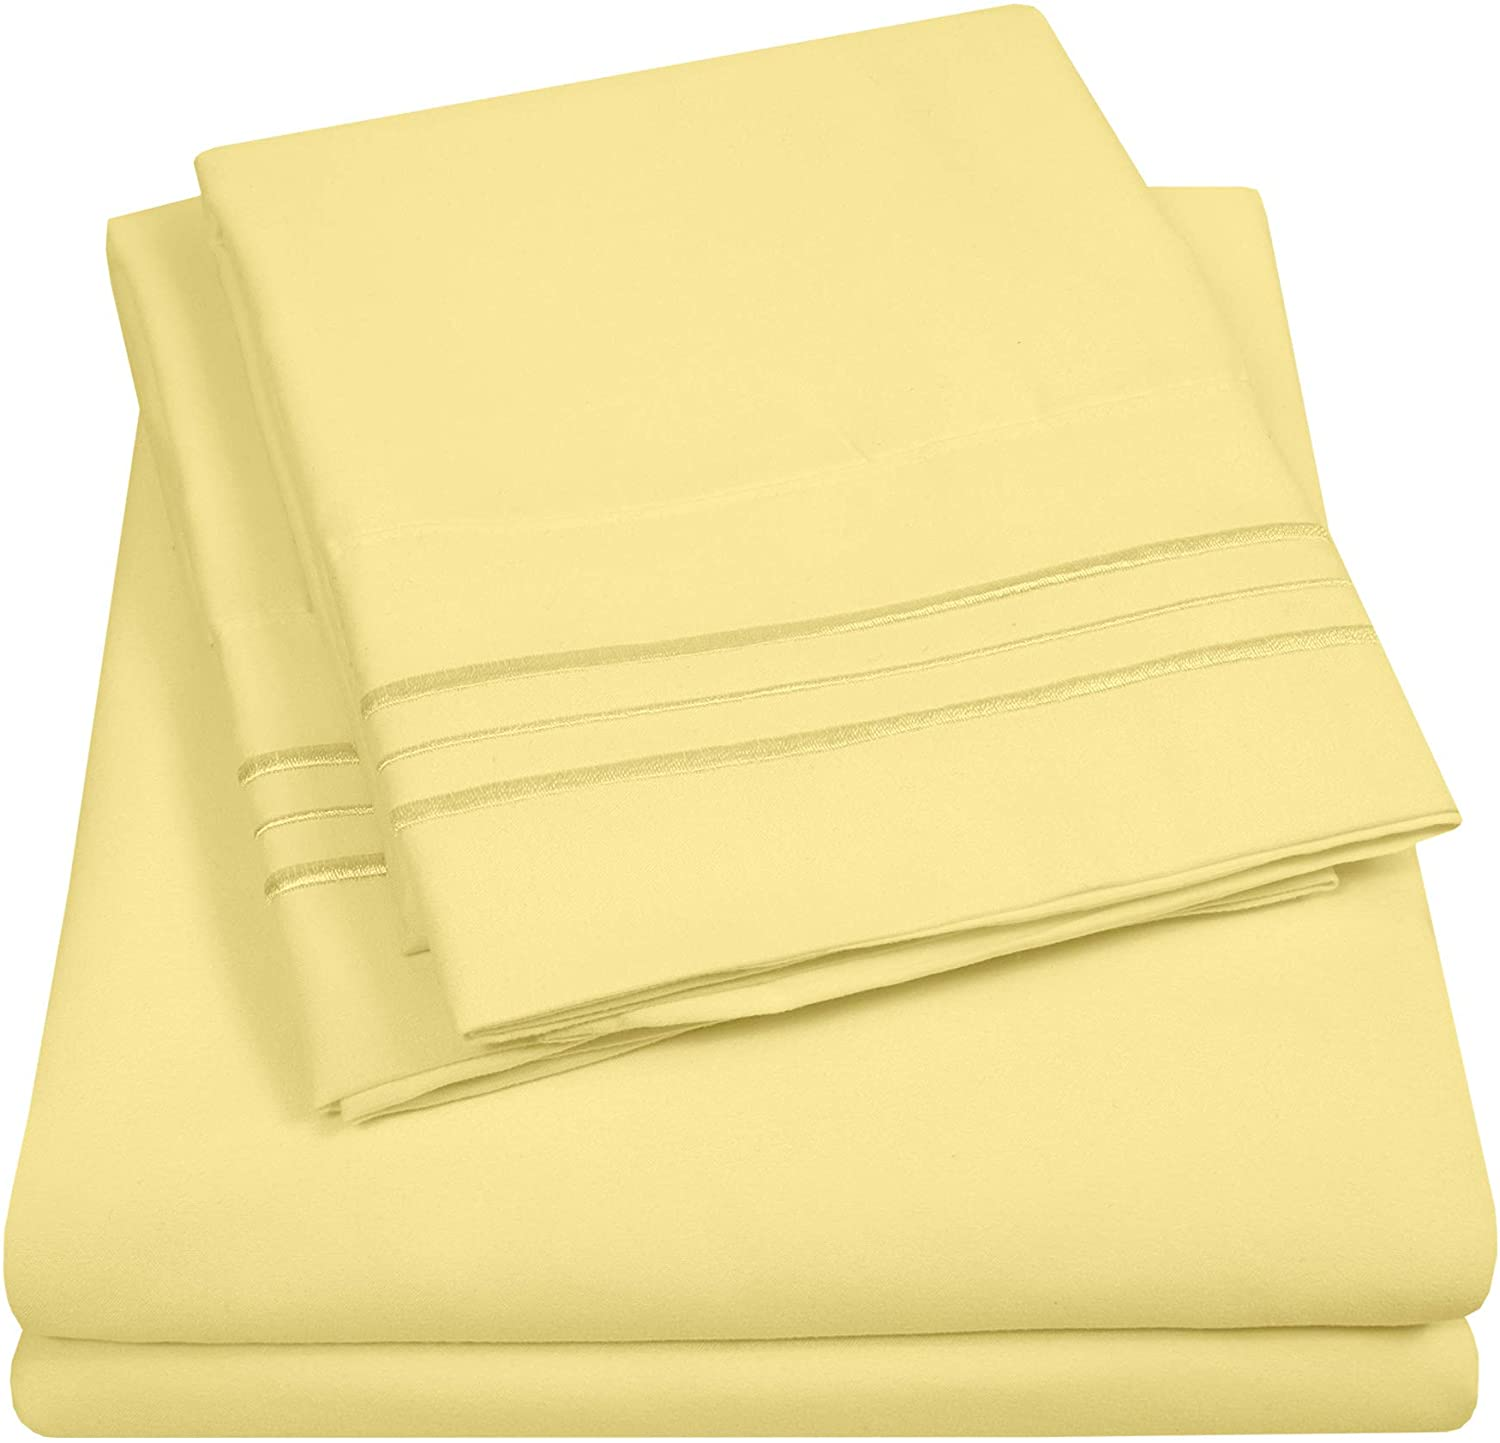 1500 Supreme Collection Extra Soft California King Sheet Set, Pale Yellow- Luxury Bed Sheet Set with Deep Pocket Wrinkle Free Hypoallergenic Bed Sheets, Cal King Size, Peach